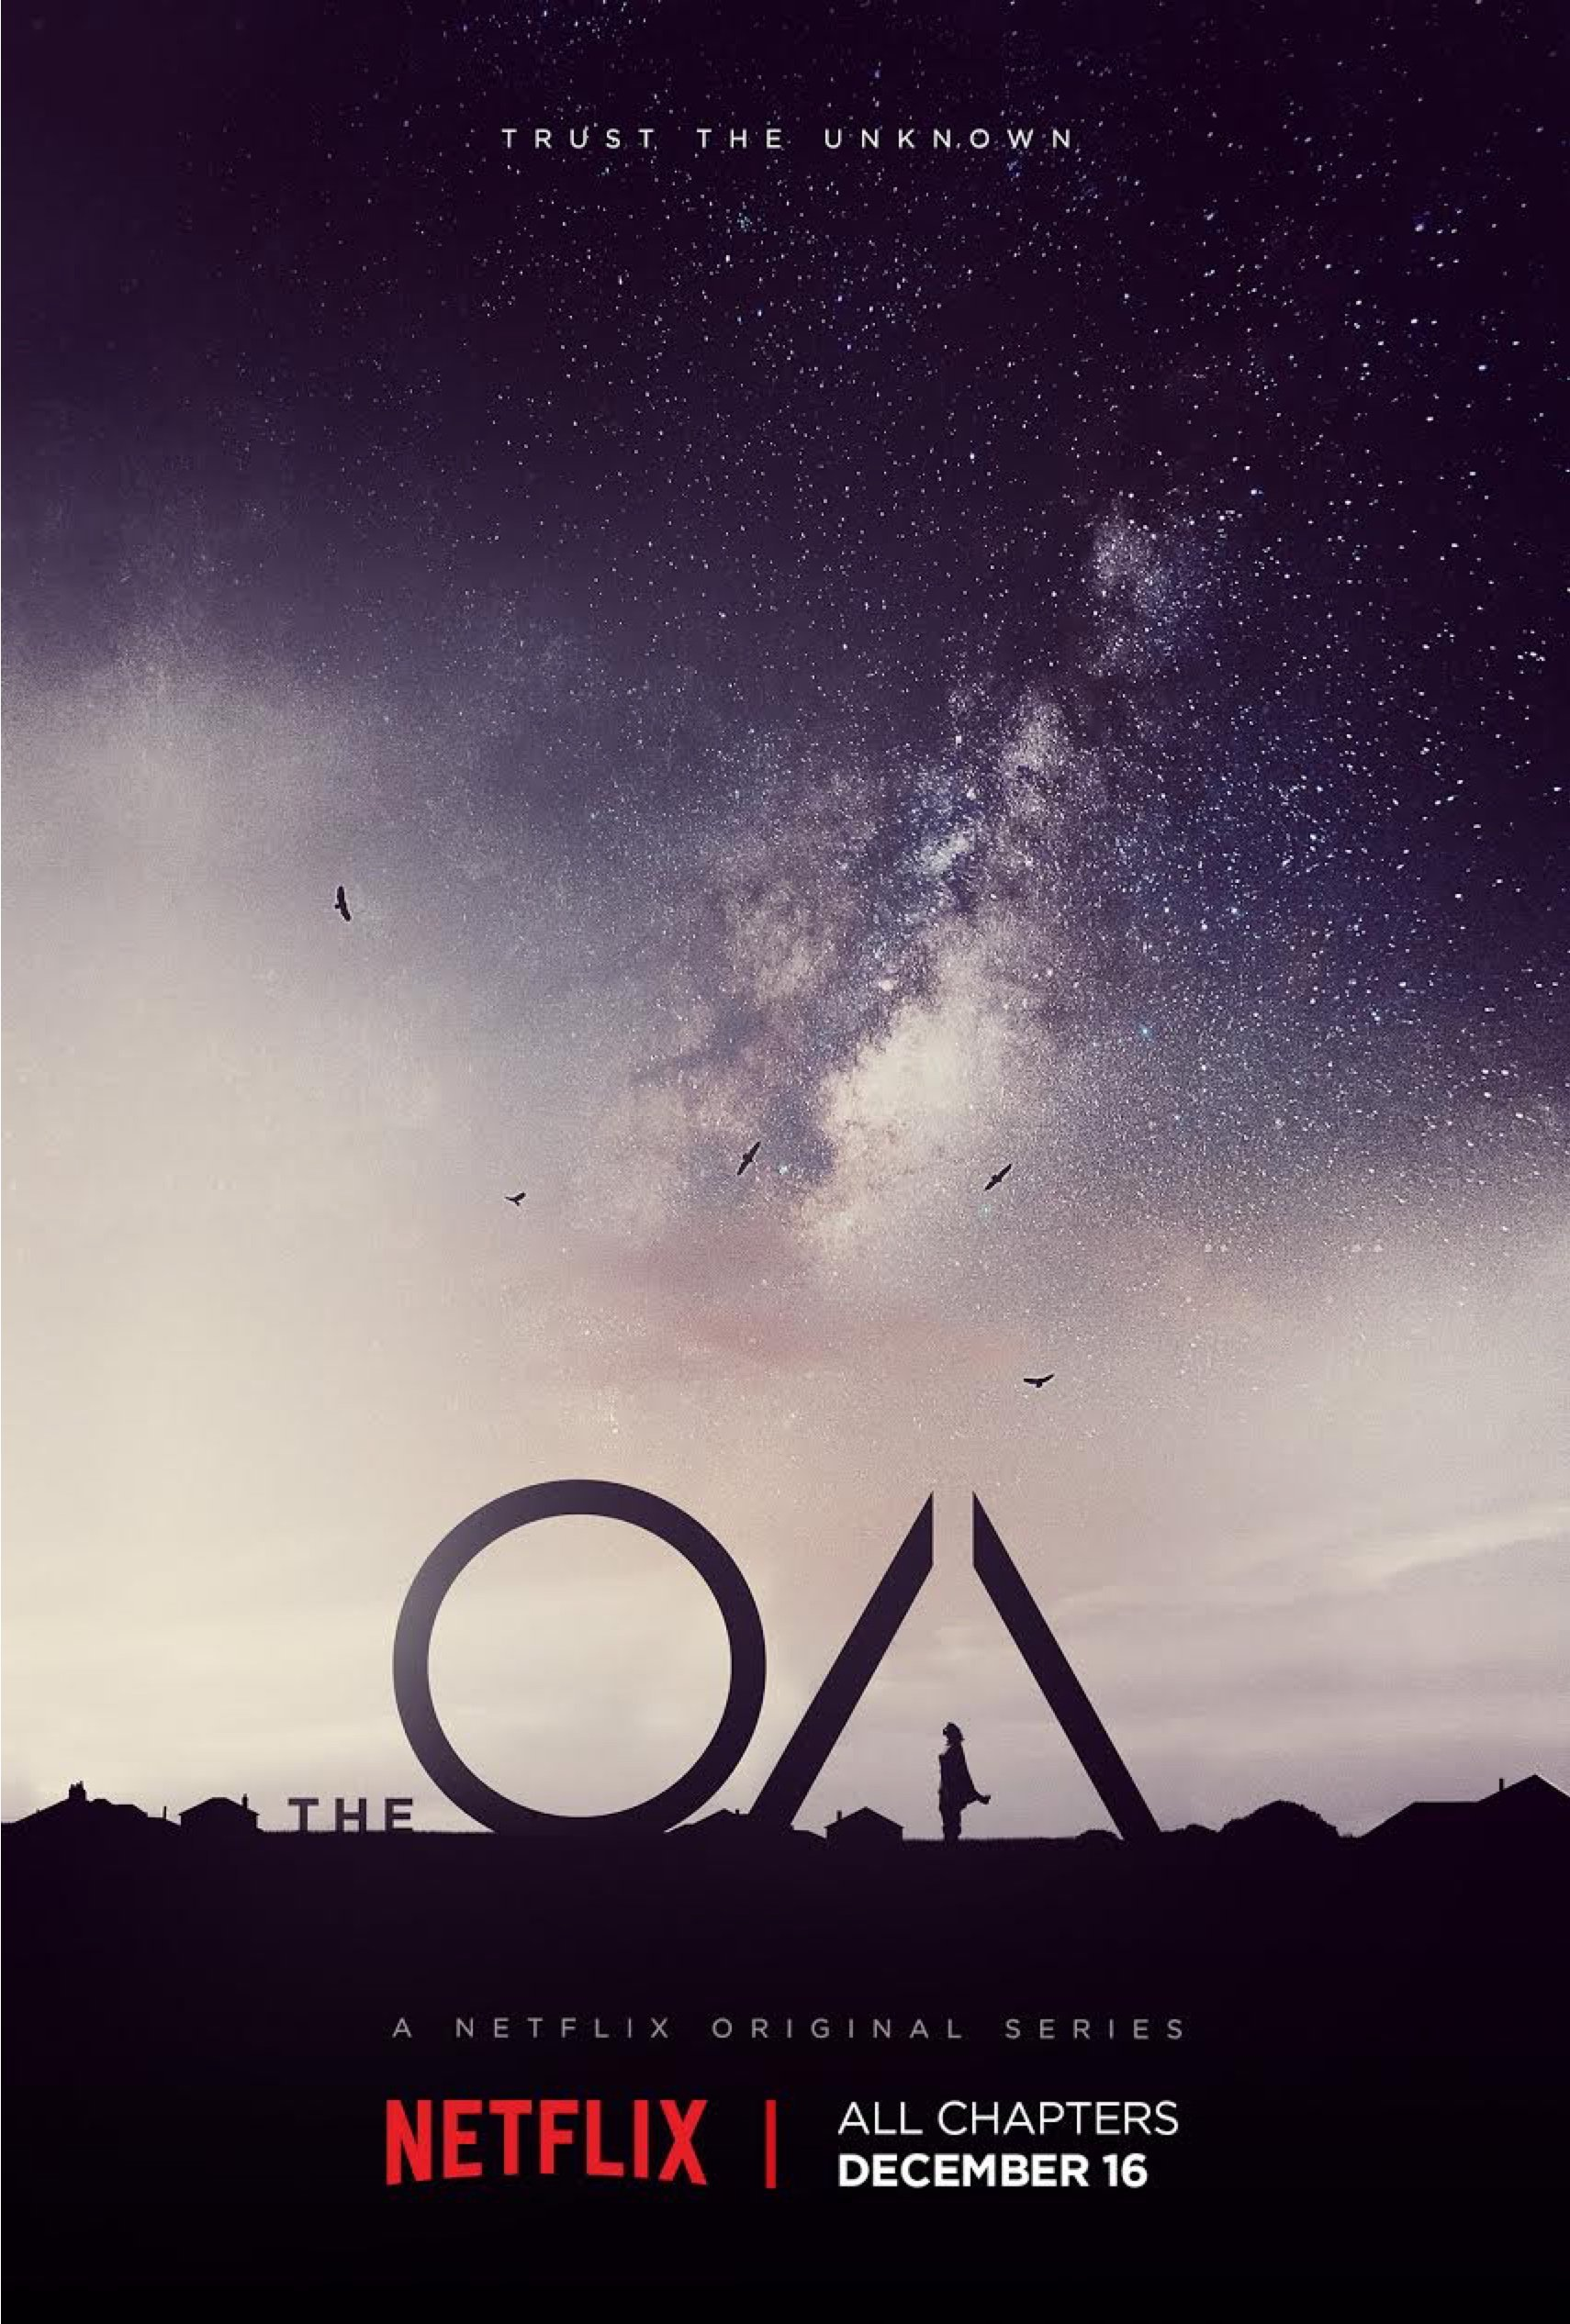 The OA Season 1 spoiler-free review – a bold and moving mystery